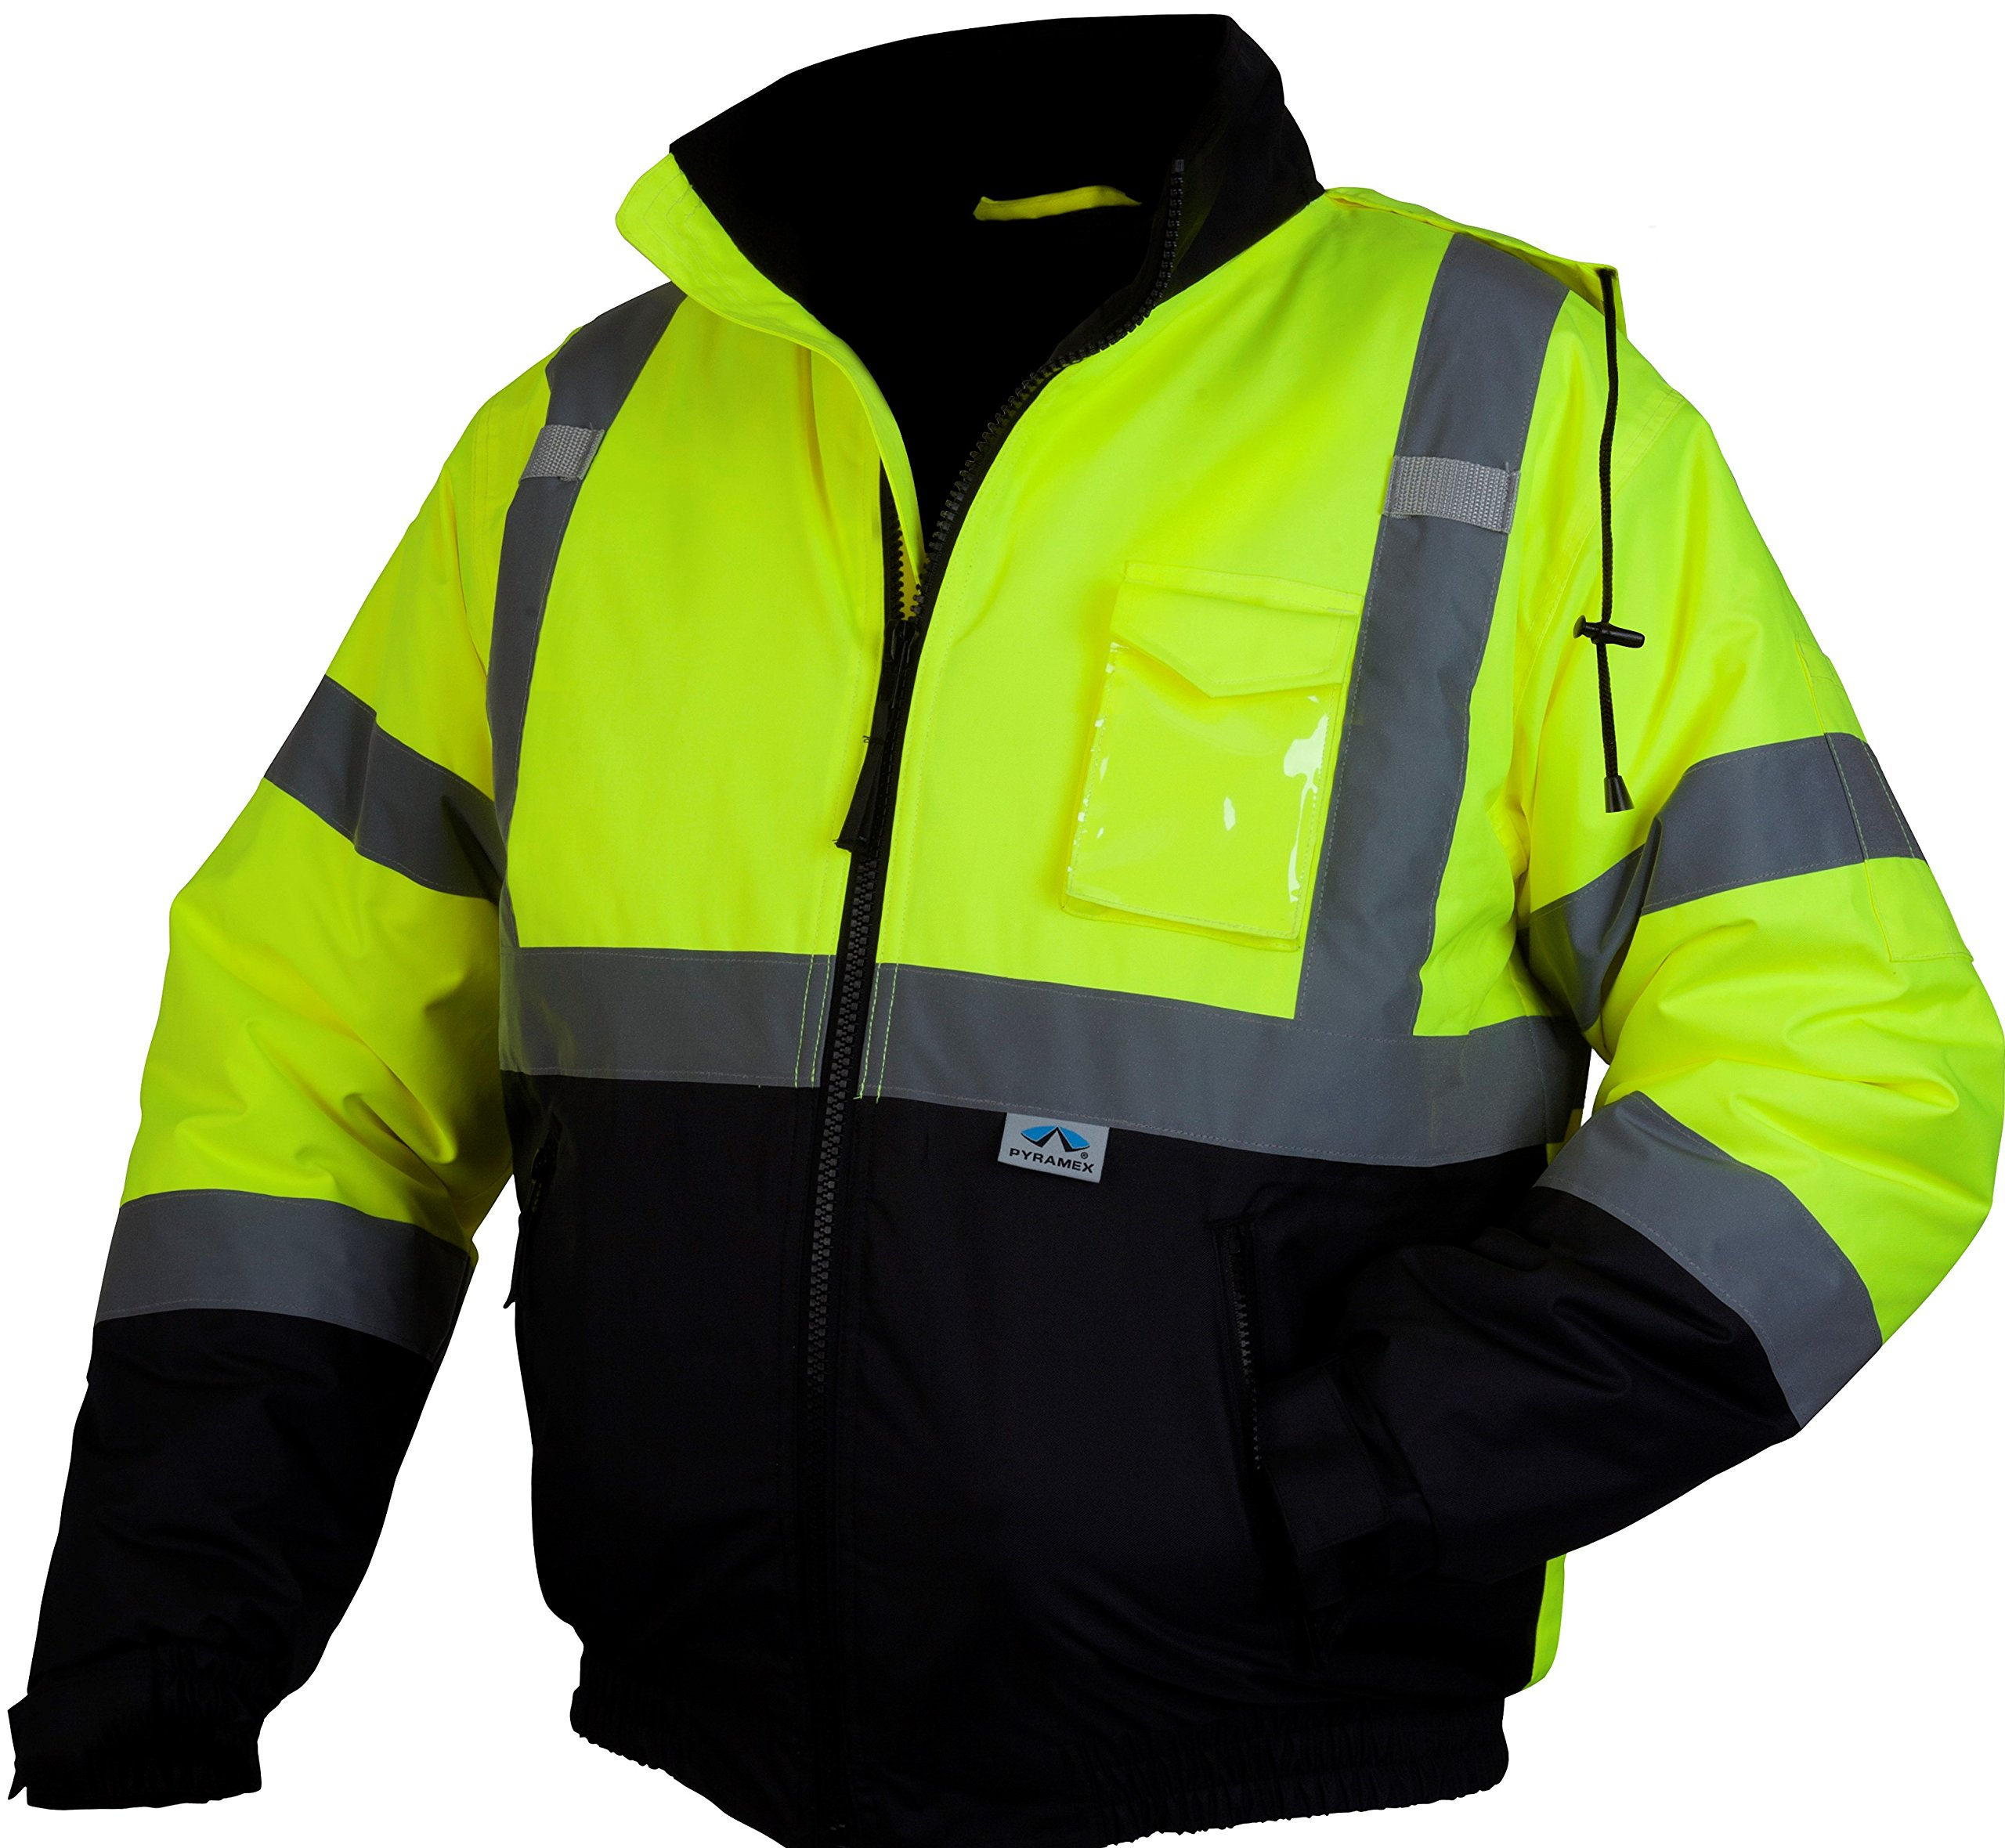 Pyramex Safety Bomber Jacket with Quilted Lining, Hi-Vis Lime, Large by Pyramex